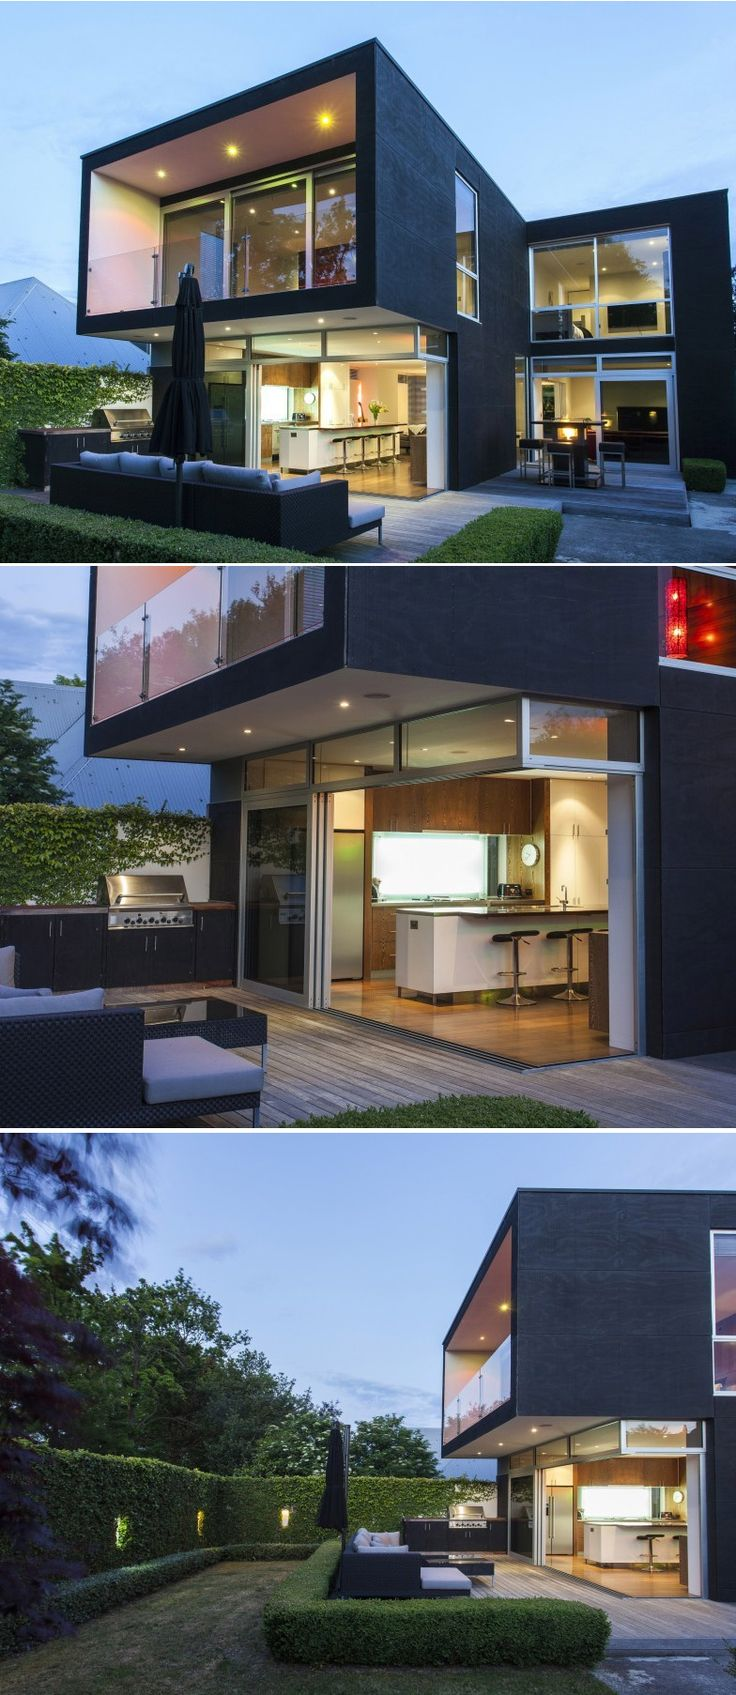 1000+ ideas about Modern House Design on Pinterest Modern Houses ... - ^